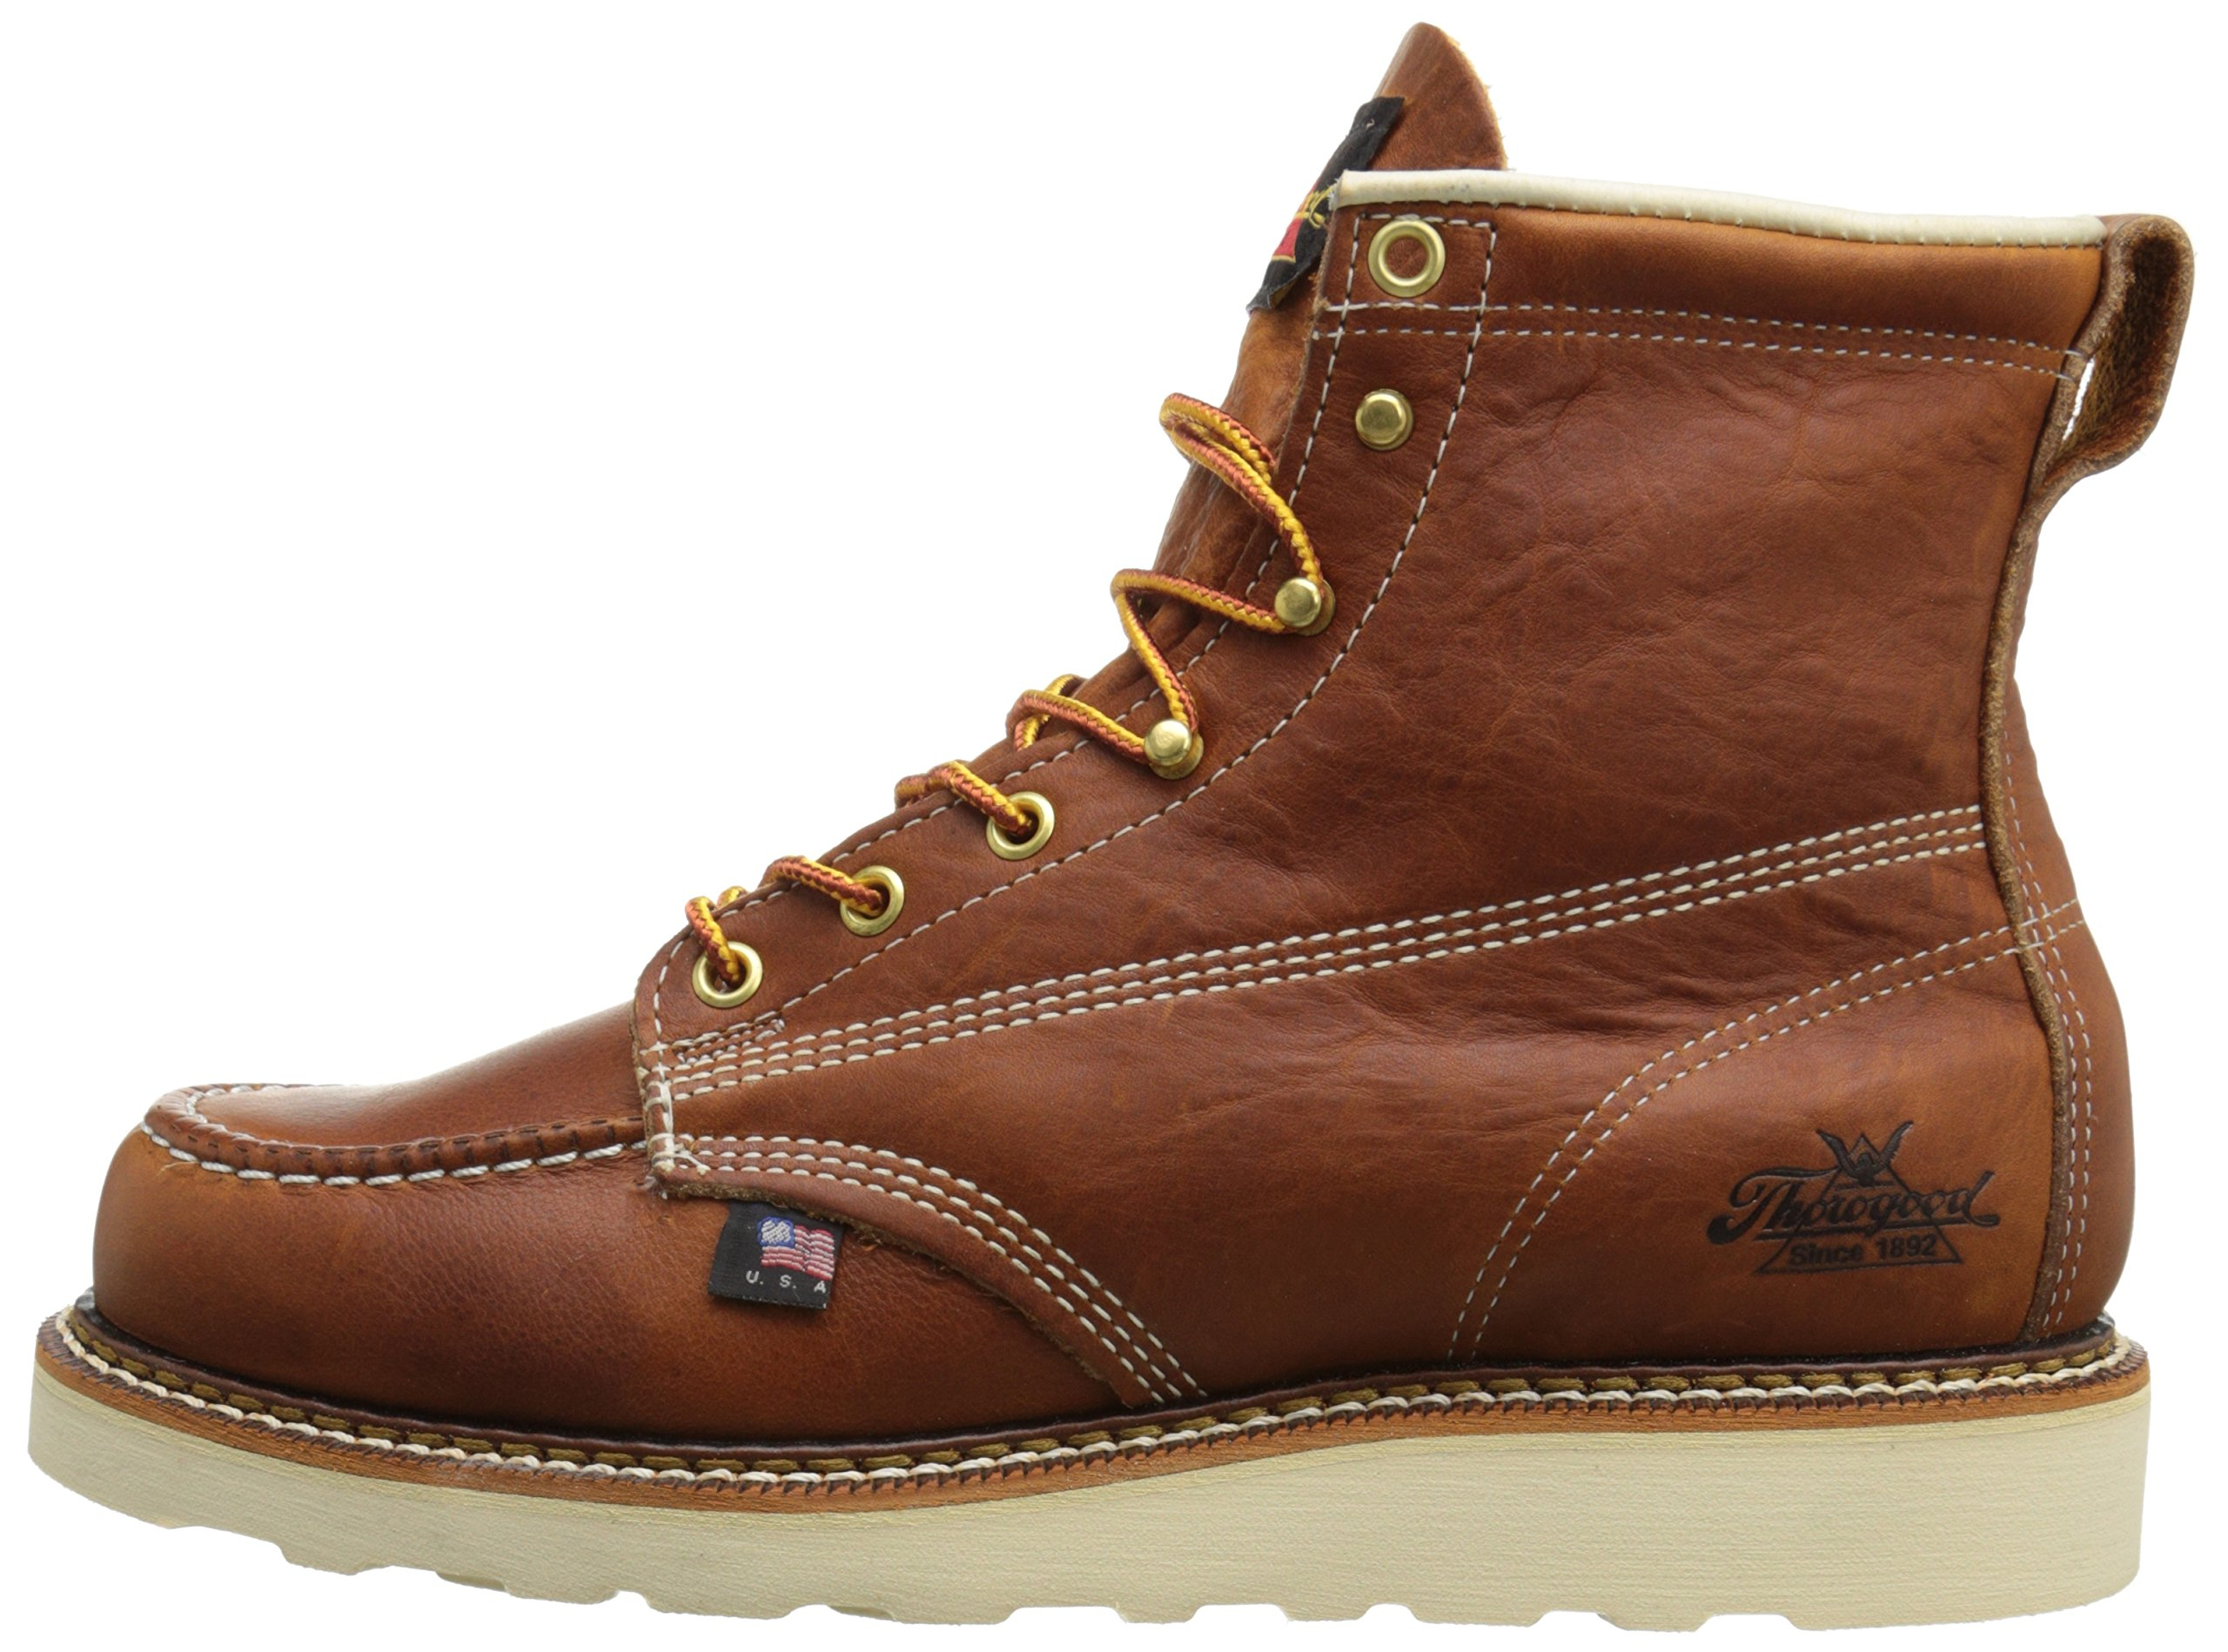 Thorogood-American-Heritage-Men-039-s-6-034-Moc-Toe-Max-Wedge-Non-Safety-Boots thumbnail 24